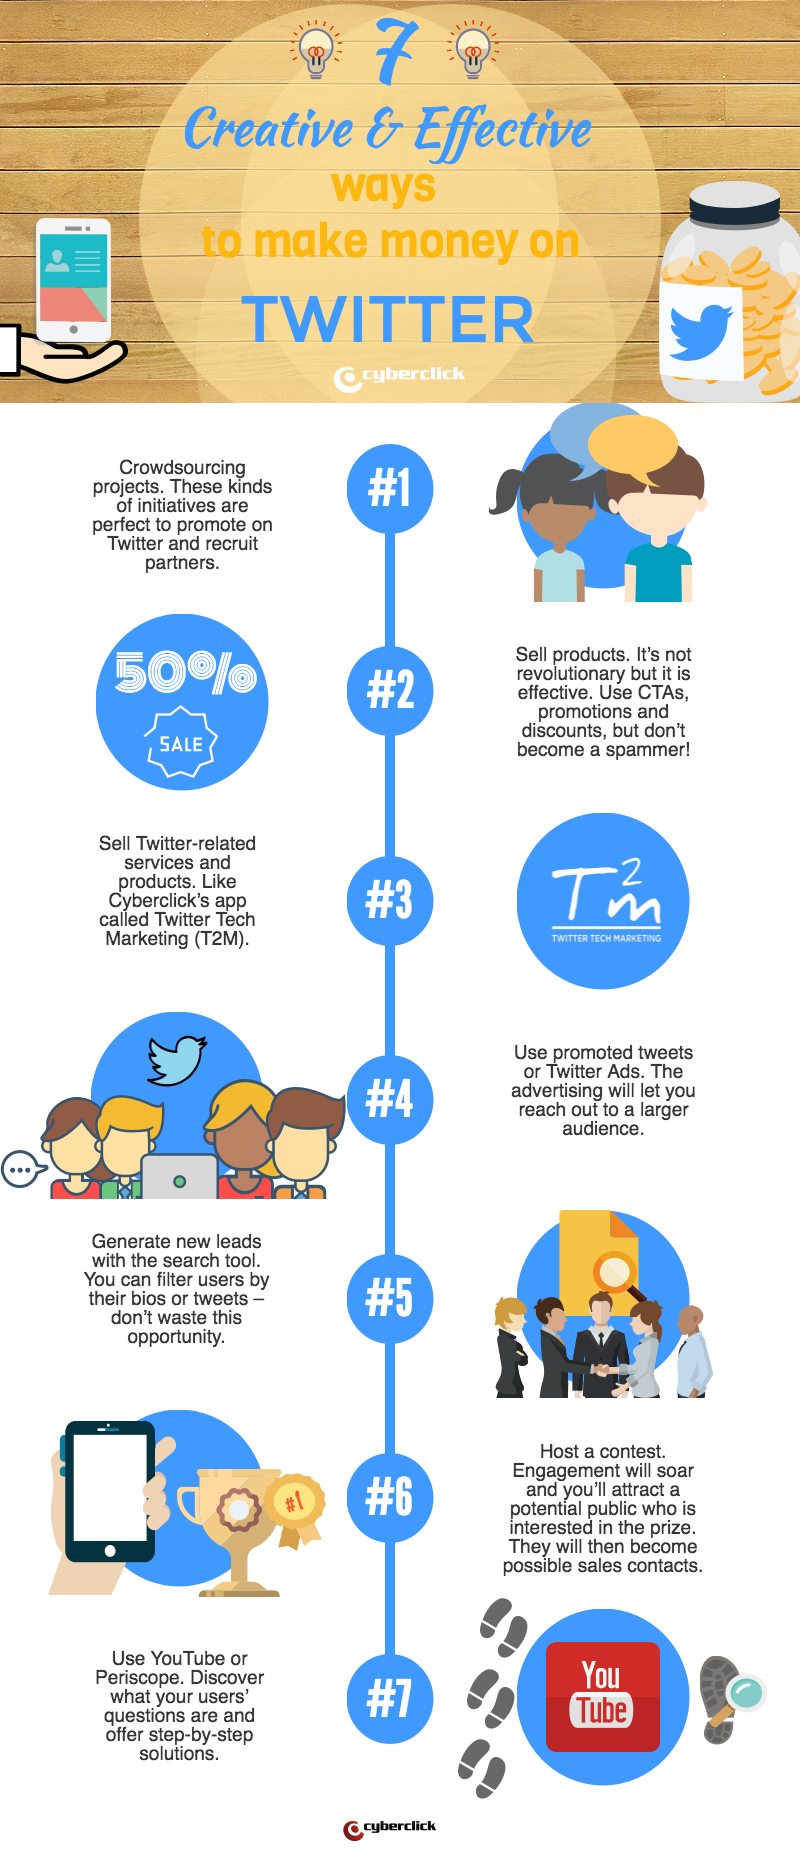 7-creative-effective-ways-to-make-money-on-twitter.png